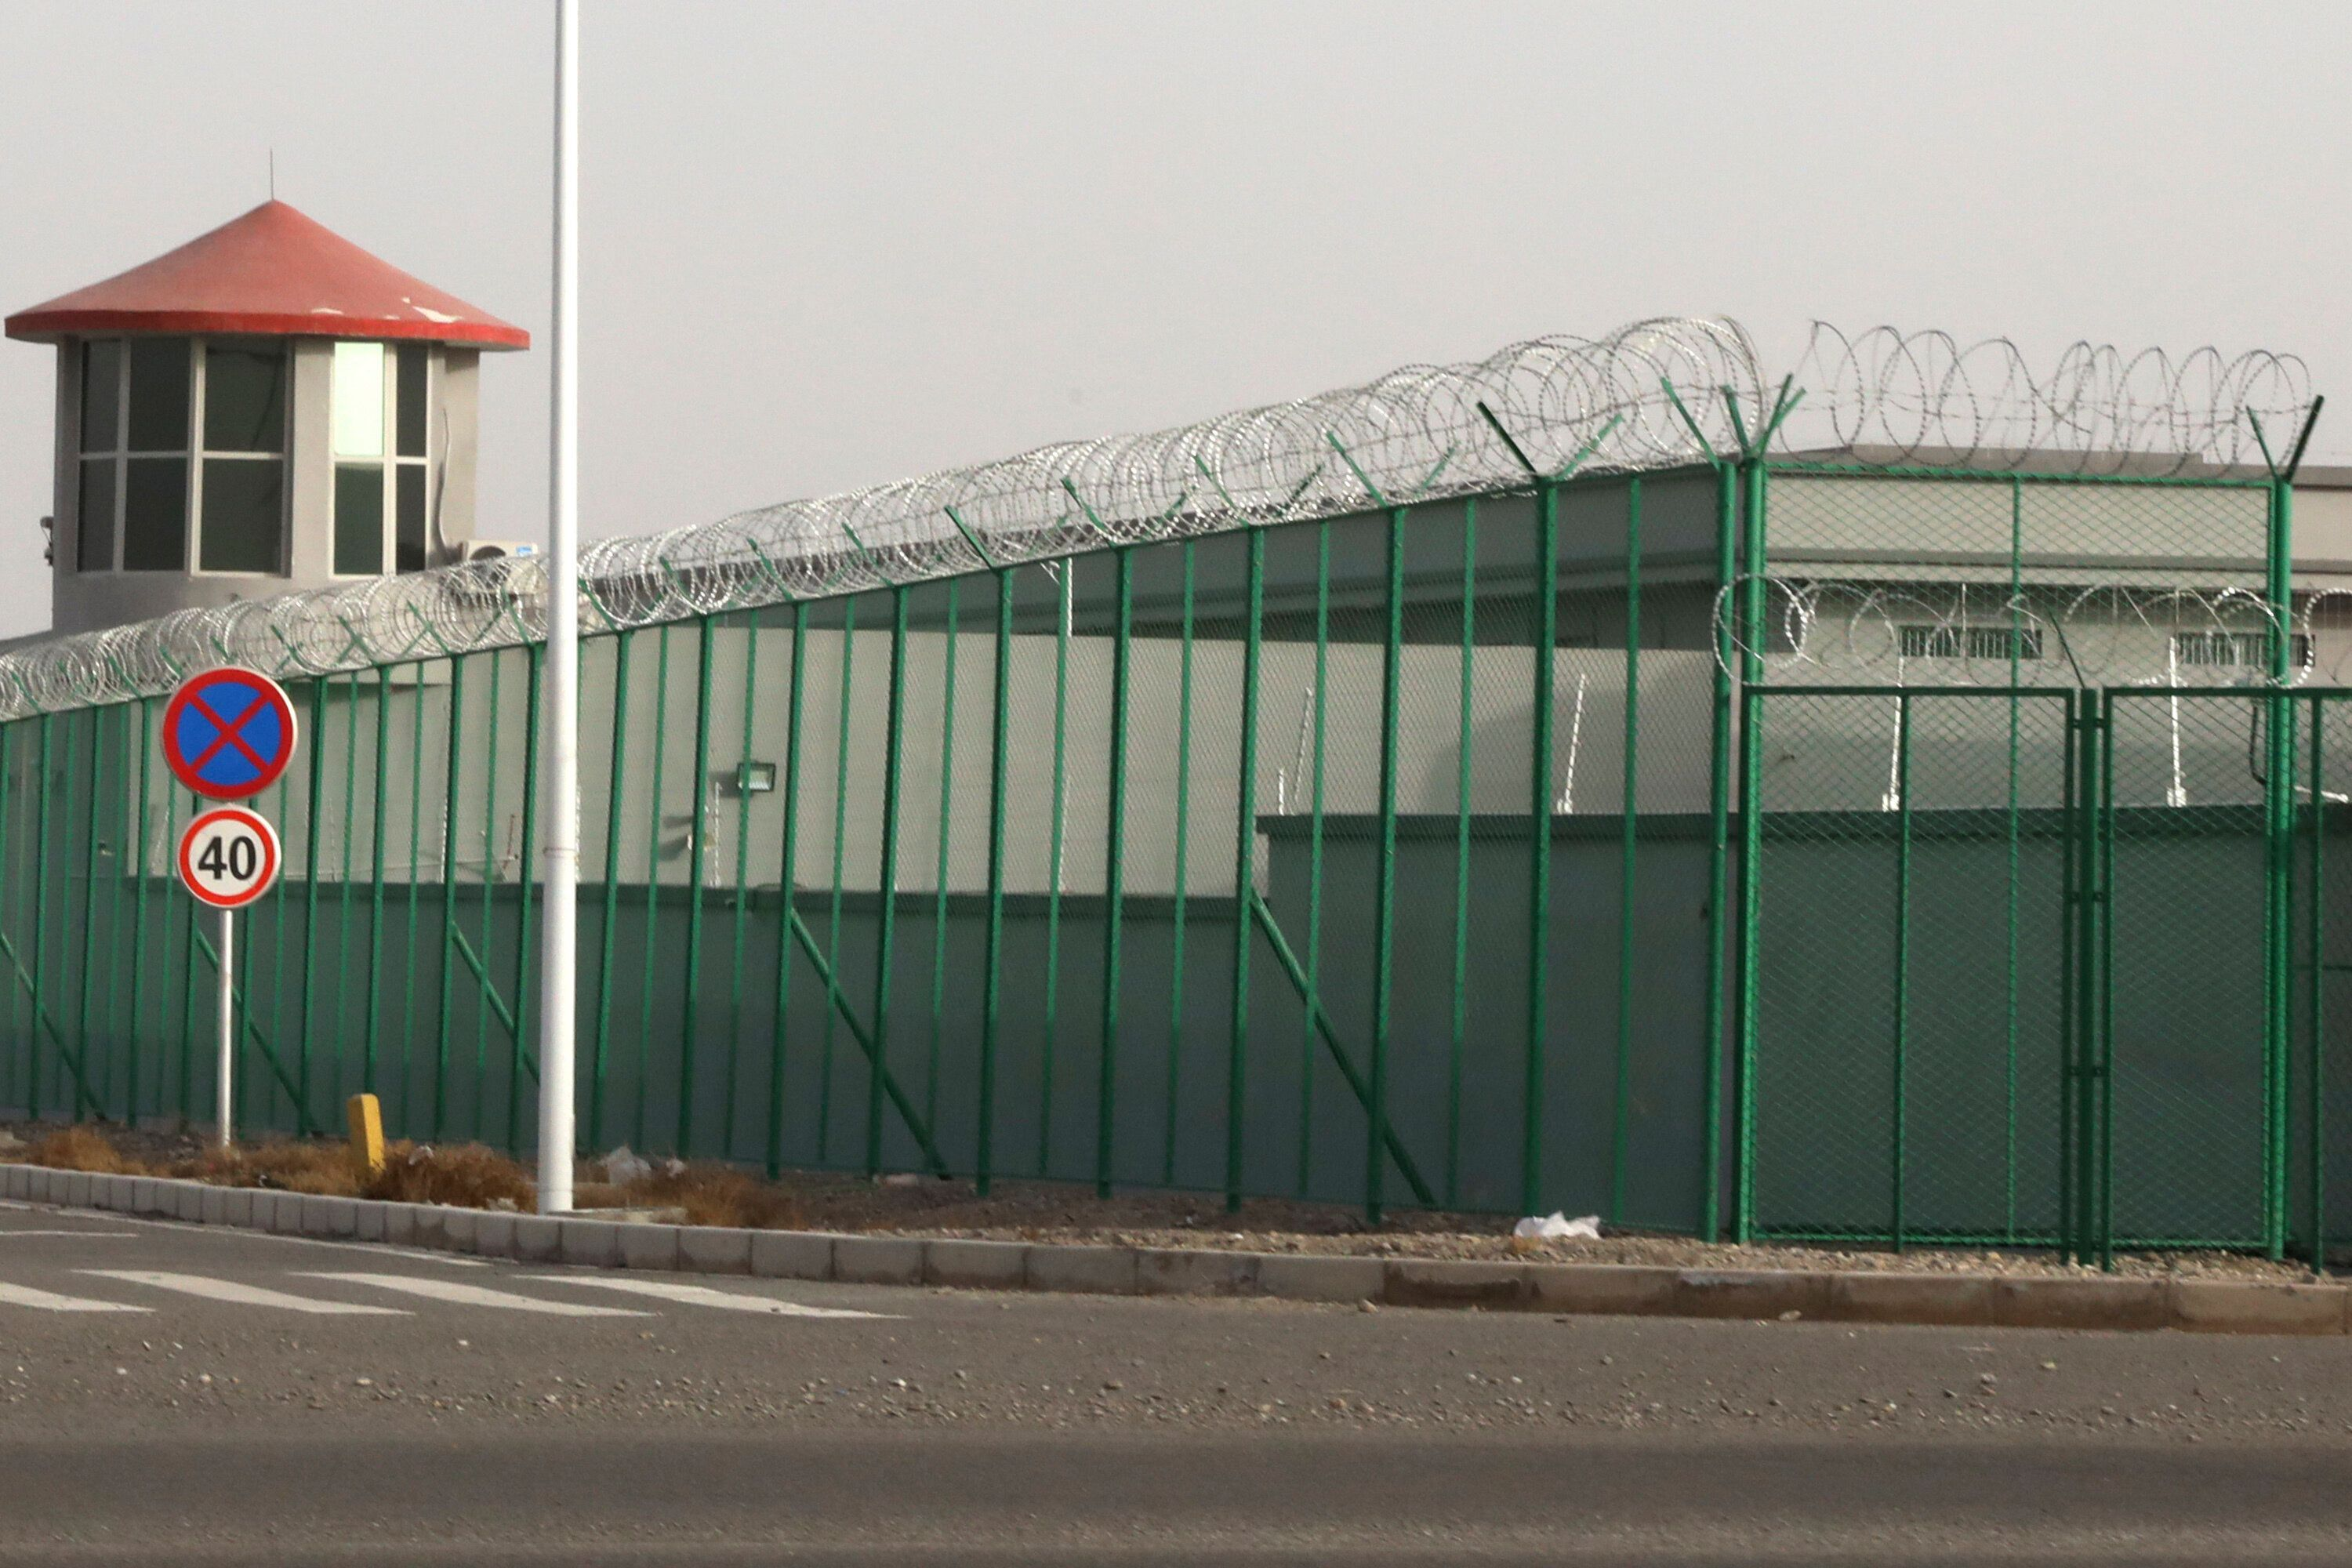 In this Dec. 3, 2018, file photo, a guard tower and barbed wire fences surround an internment facility in the Kunshan Industr